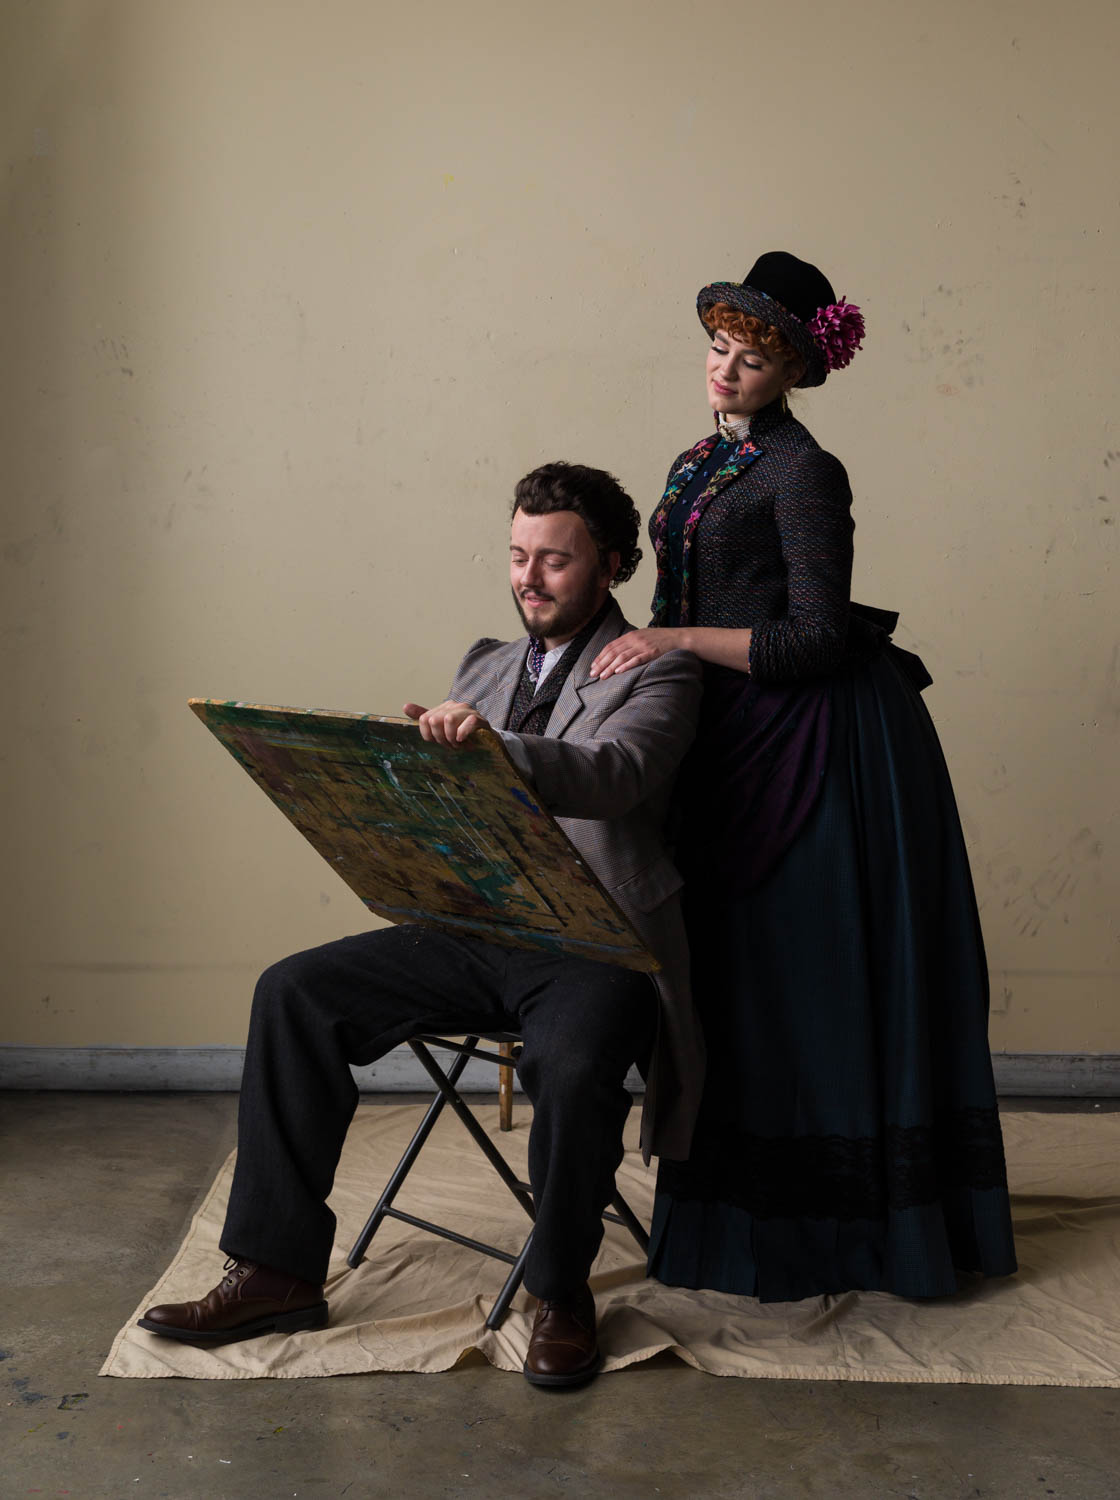 Promotional photography for the play